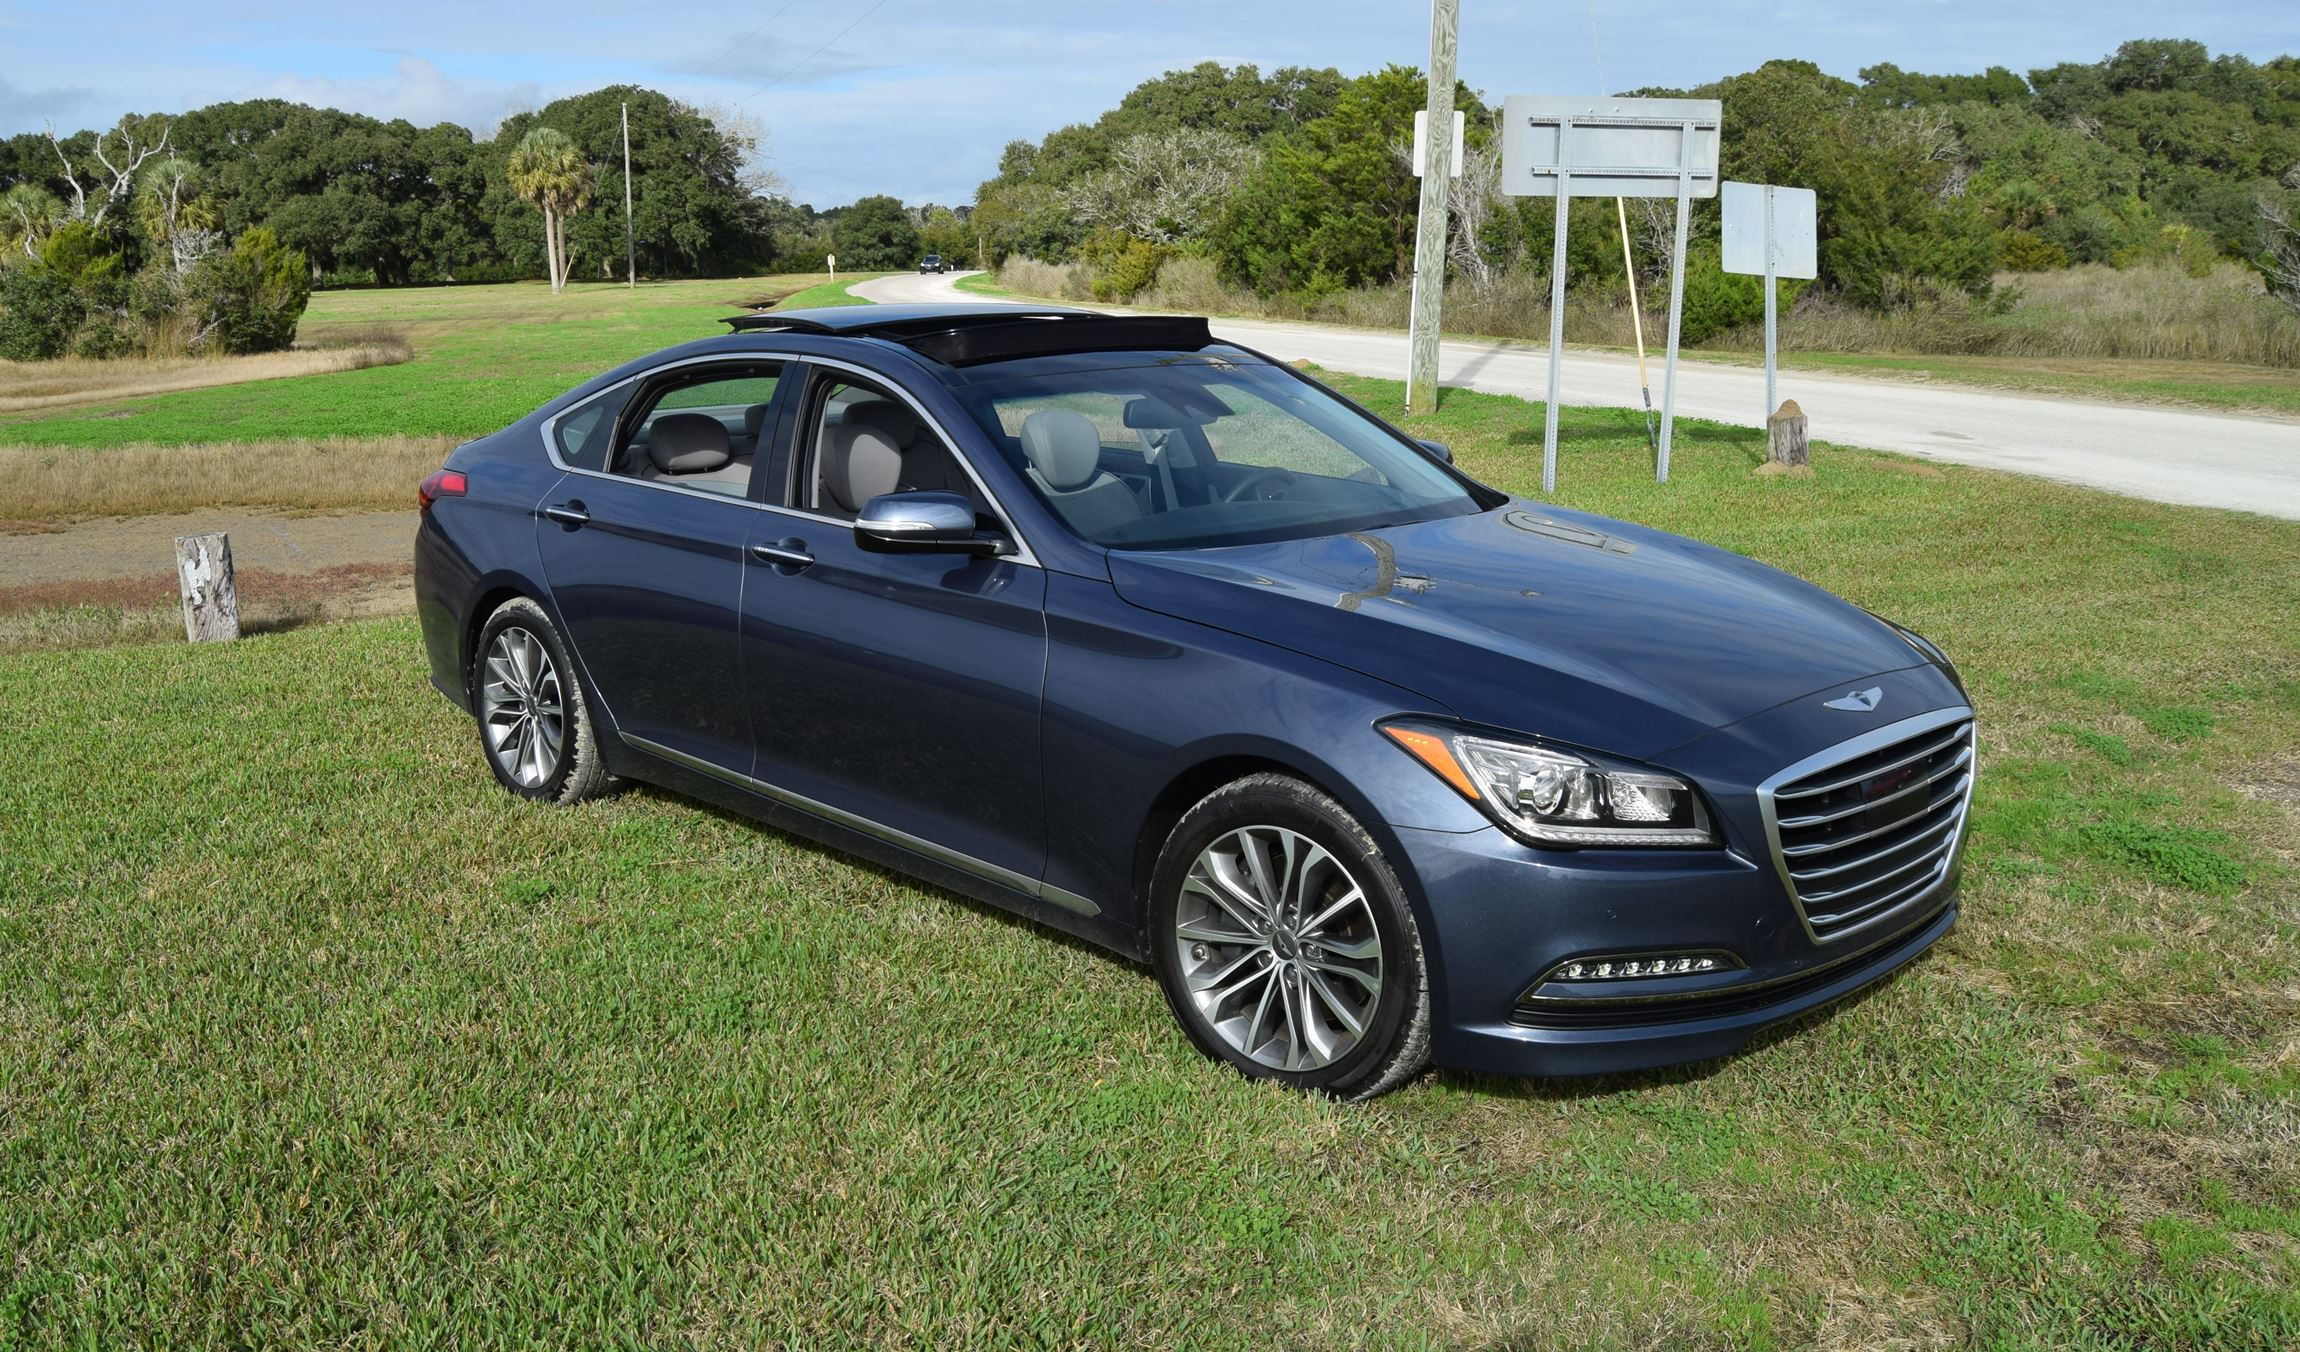 hd road test review 2016 hyundai genesis ultimate v6 rwd car revs. Black Bedroom Furniture Sets. Home Design Ideas